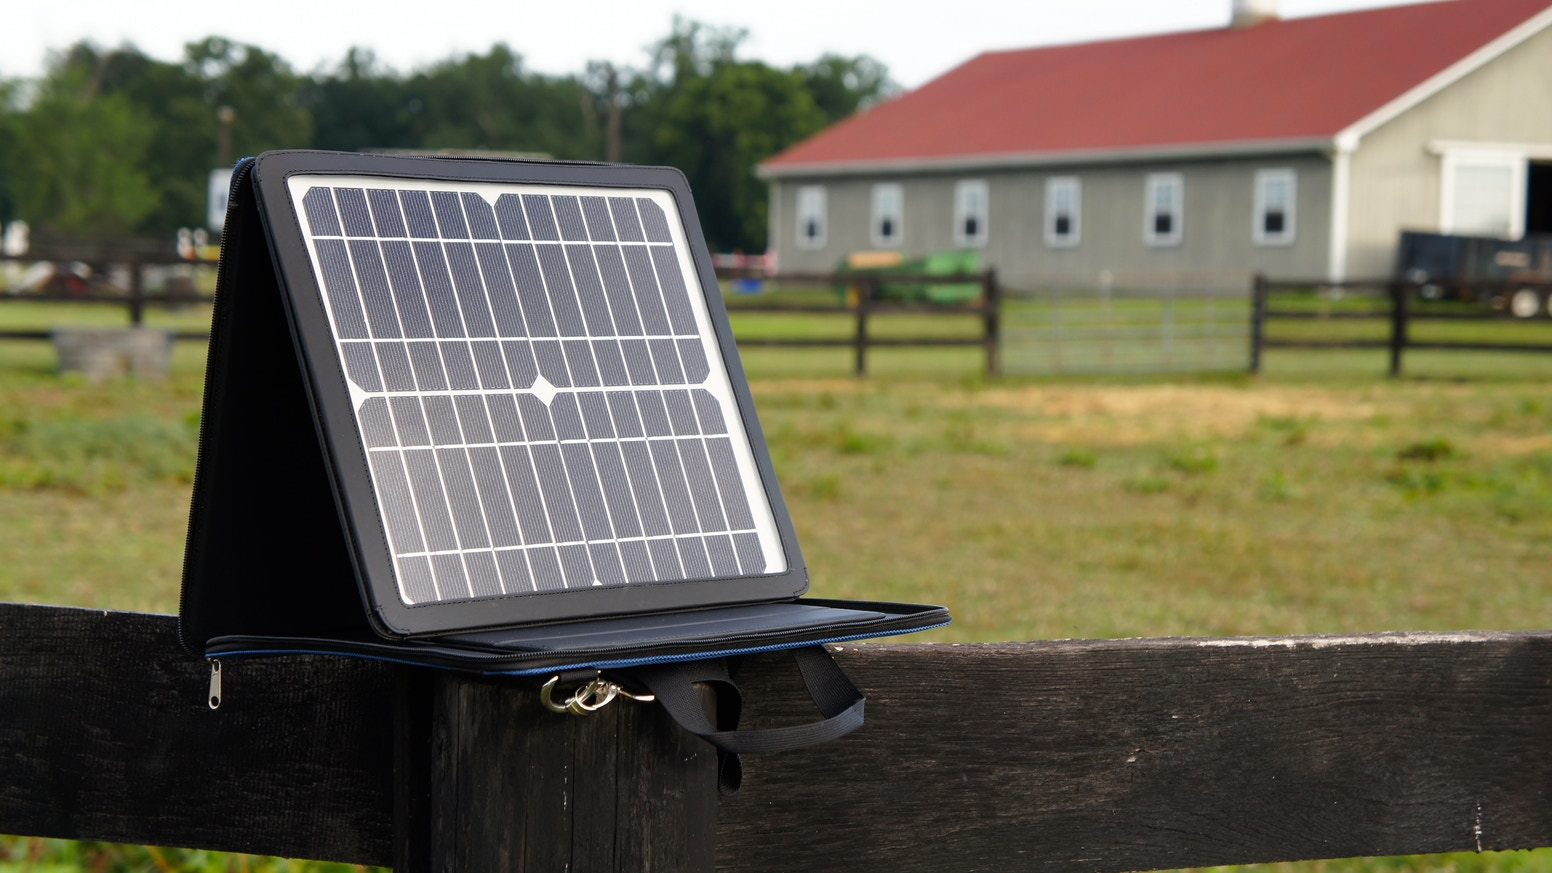 Sunvolt Portable Solar Power Station By Don Cayelli Kickstarter Battery Via The Mini Usb Port On Charging Circuit Or A High Powered That Charges All Your Gadgets Directly From